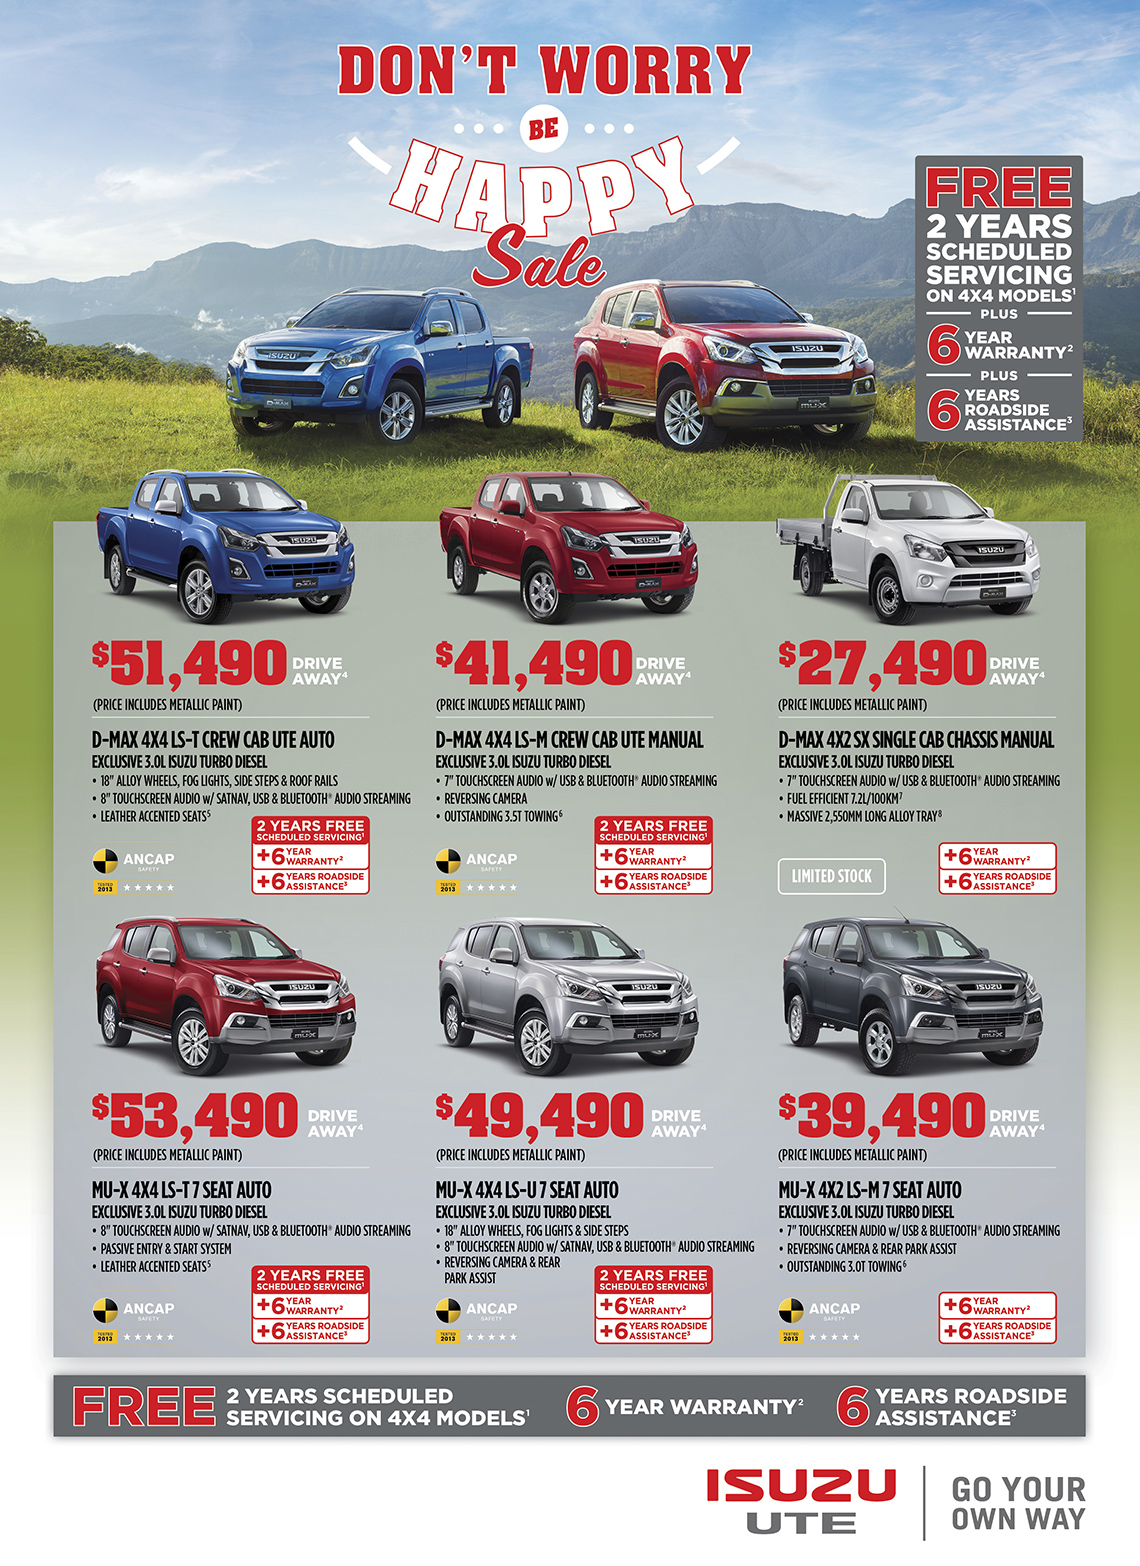 Isuzu-offer